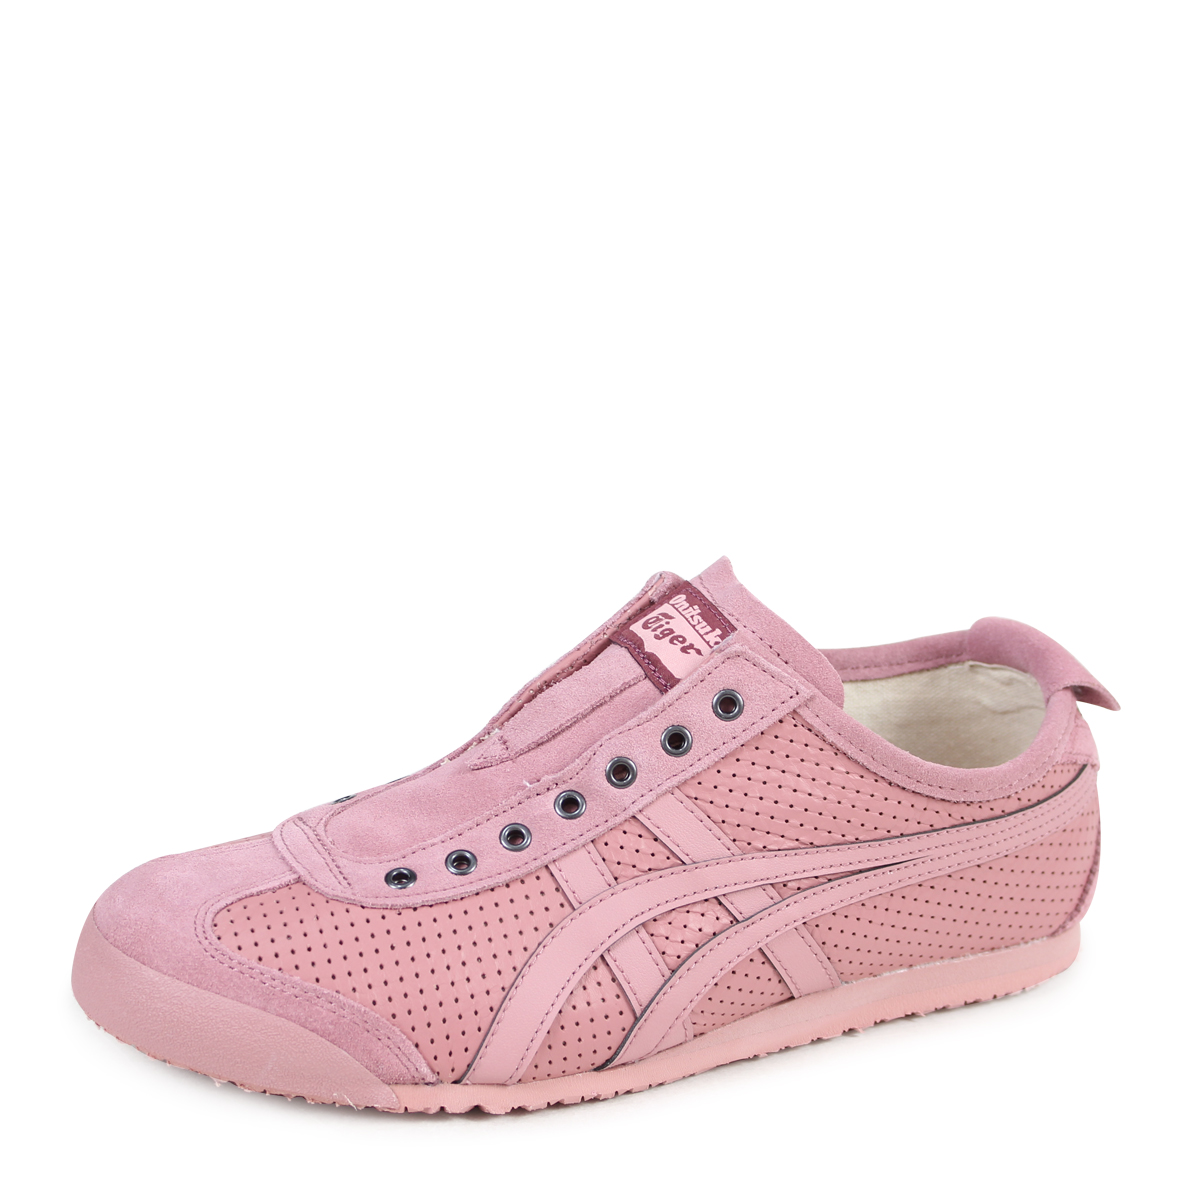 onitsuka tiger mexico 66 slip on leather